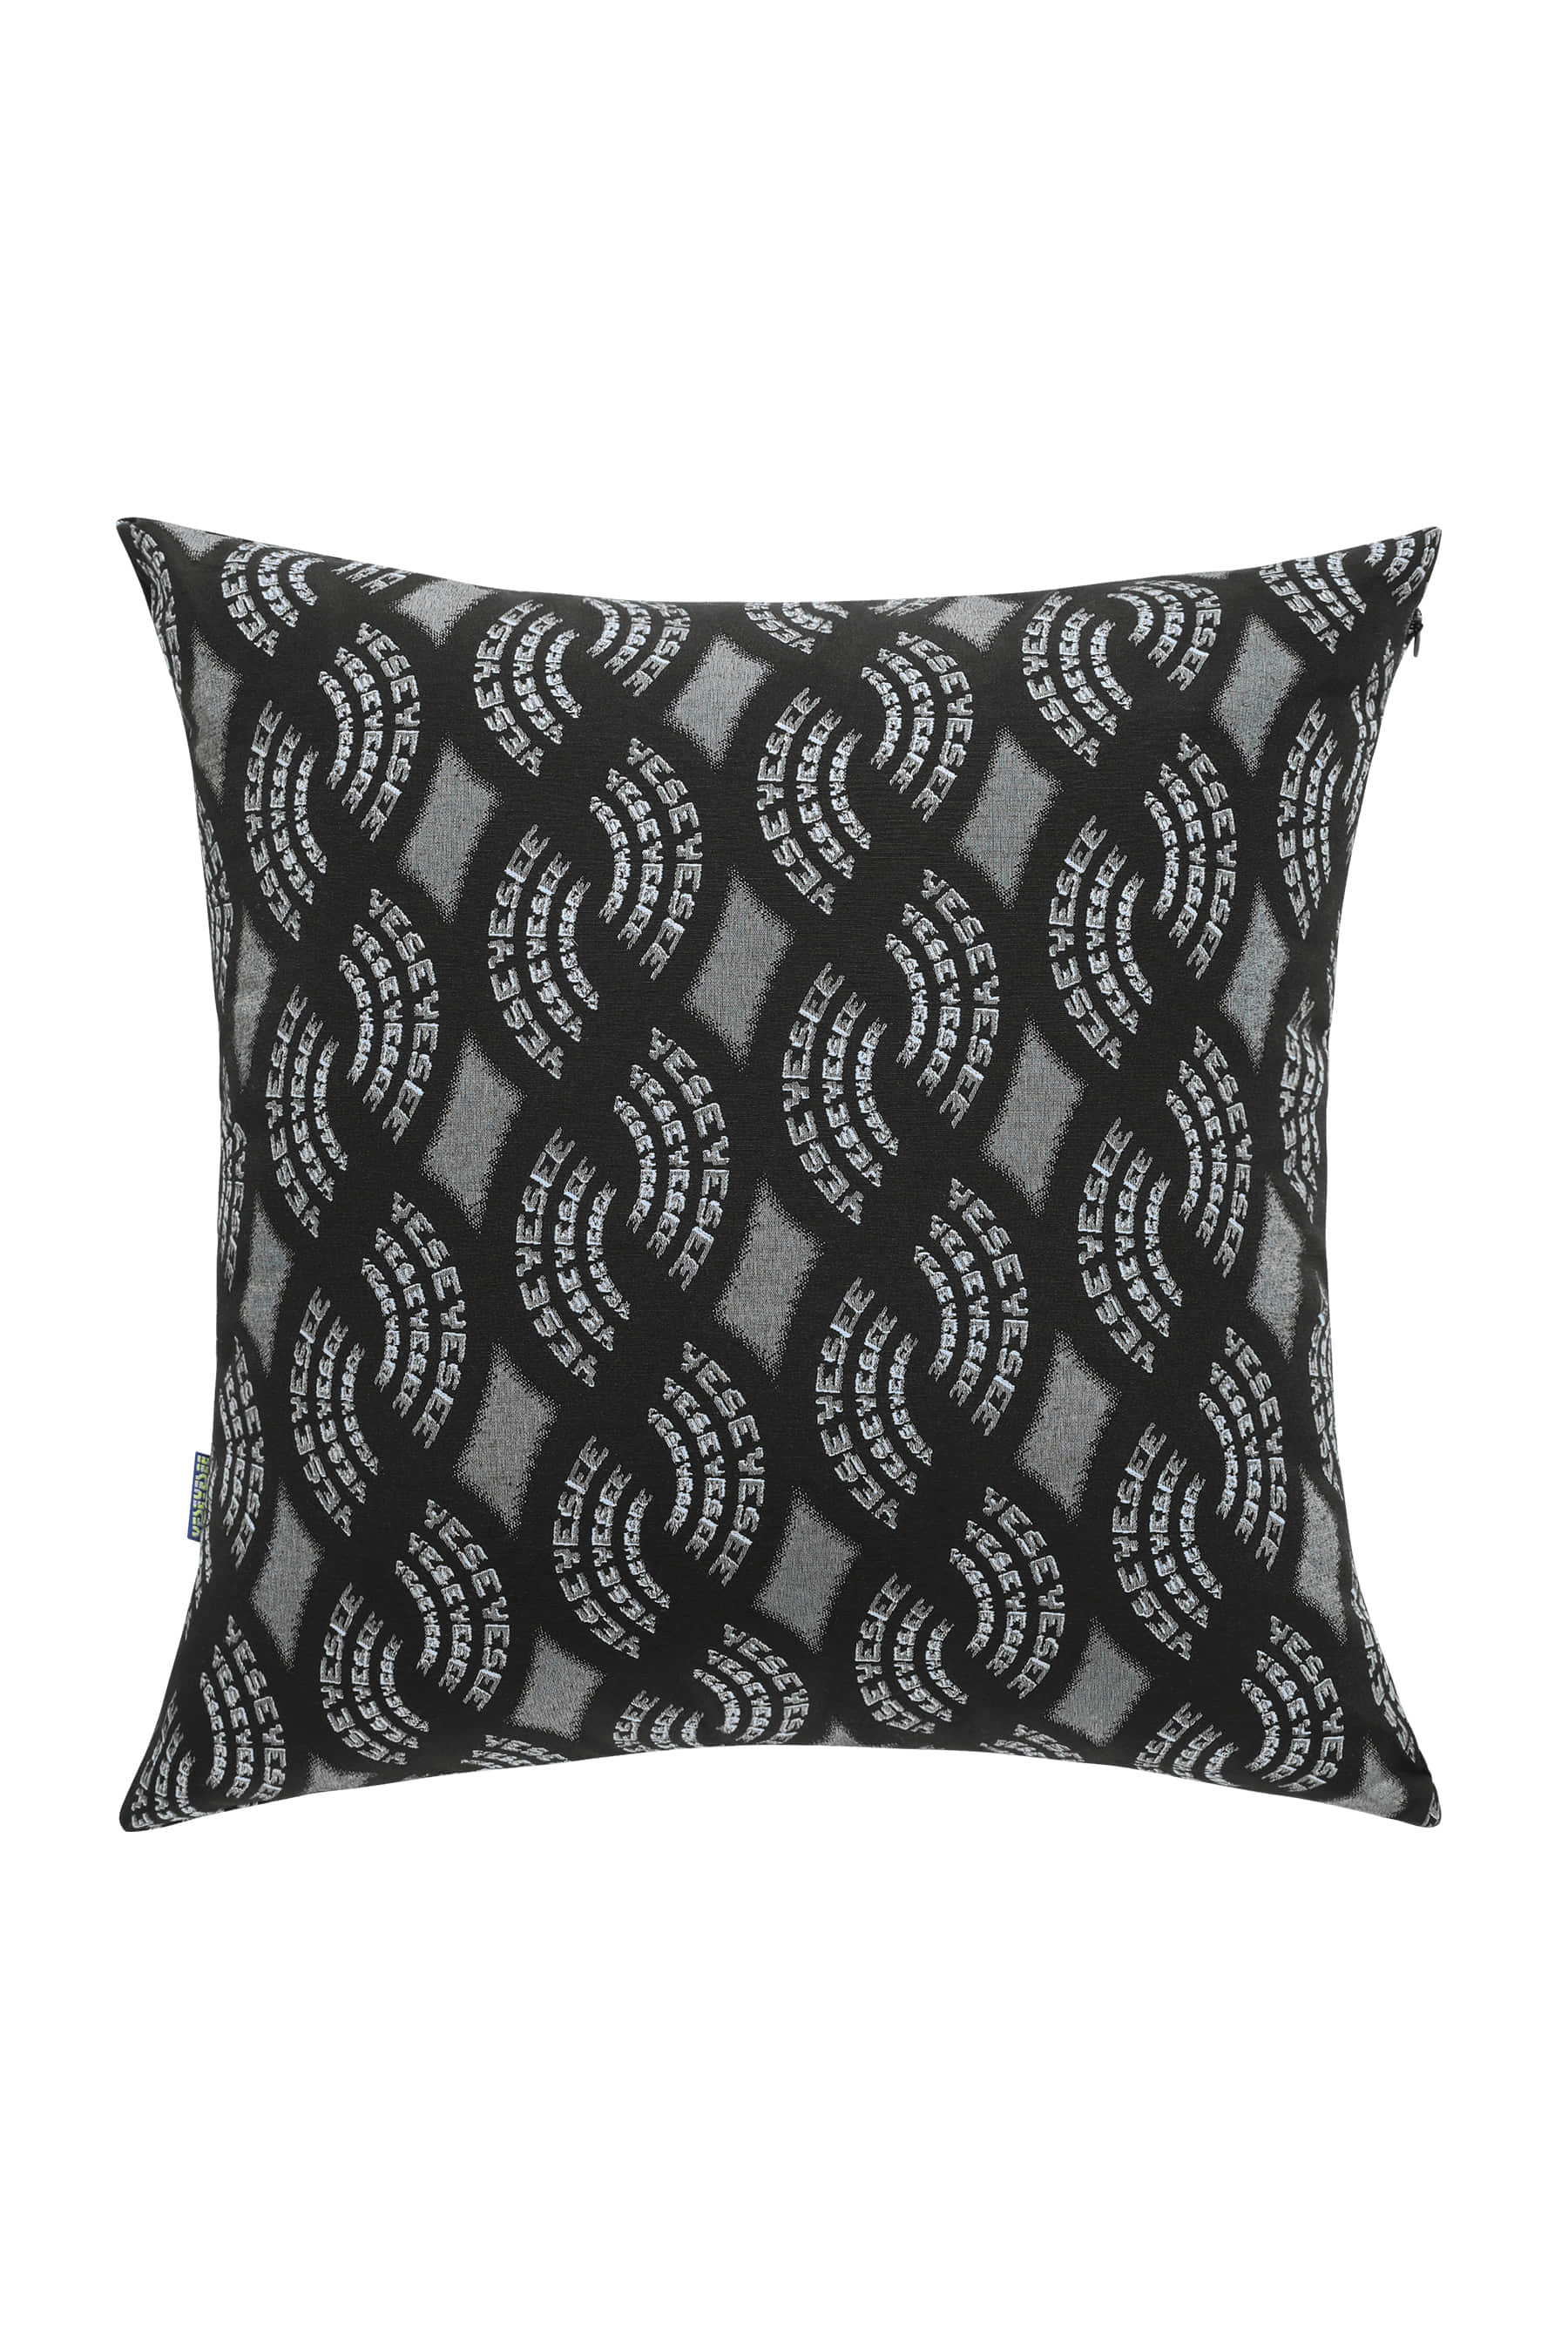 Y.E.S Jacquard Cushion Black